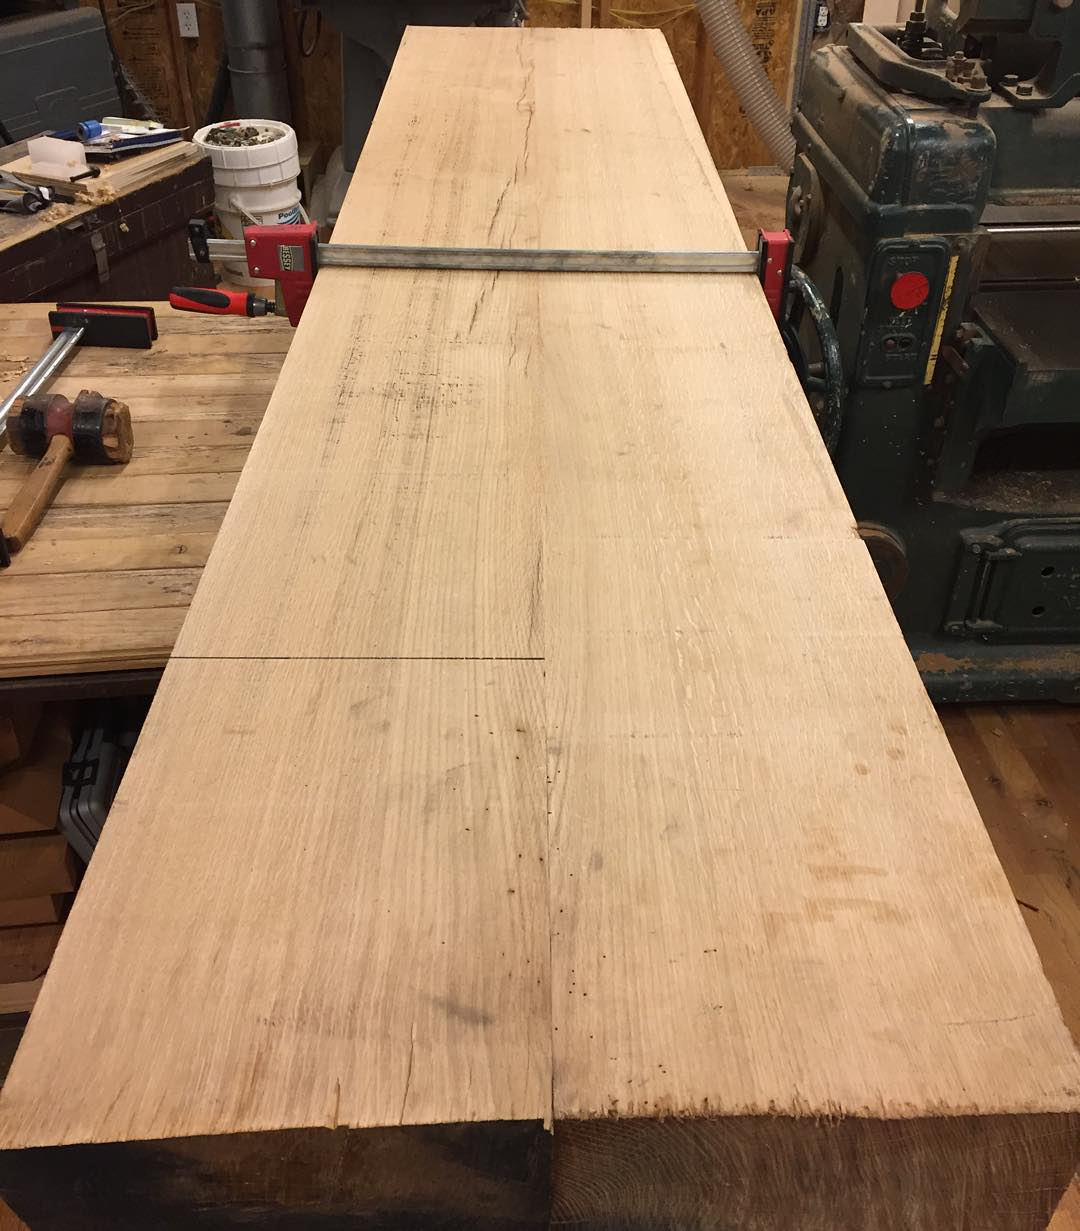 """Ok here are the two white oak slabs for the top of my new Roubo workbench. I did the heavy lifting with my 16"""" Northfield jointer and my 24"""" Oliver 299 planer. The final flattening of the centerline joint was done with my #lienielsen #7 plane. It has a slight hollow along the 110"""" length. The last 5"""" on each end will eventually be cut off to give the finished length.  #workbench #roubo #workshop #woodwork #woodworking #wood #whiteoak #jointer #handmade #handtools  #madeinusa #madeinmichigan #shop  http://ift.tt/1R695mZ"""